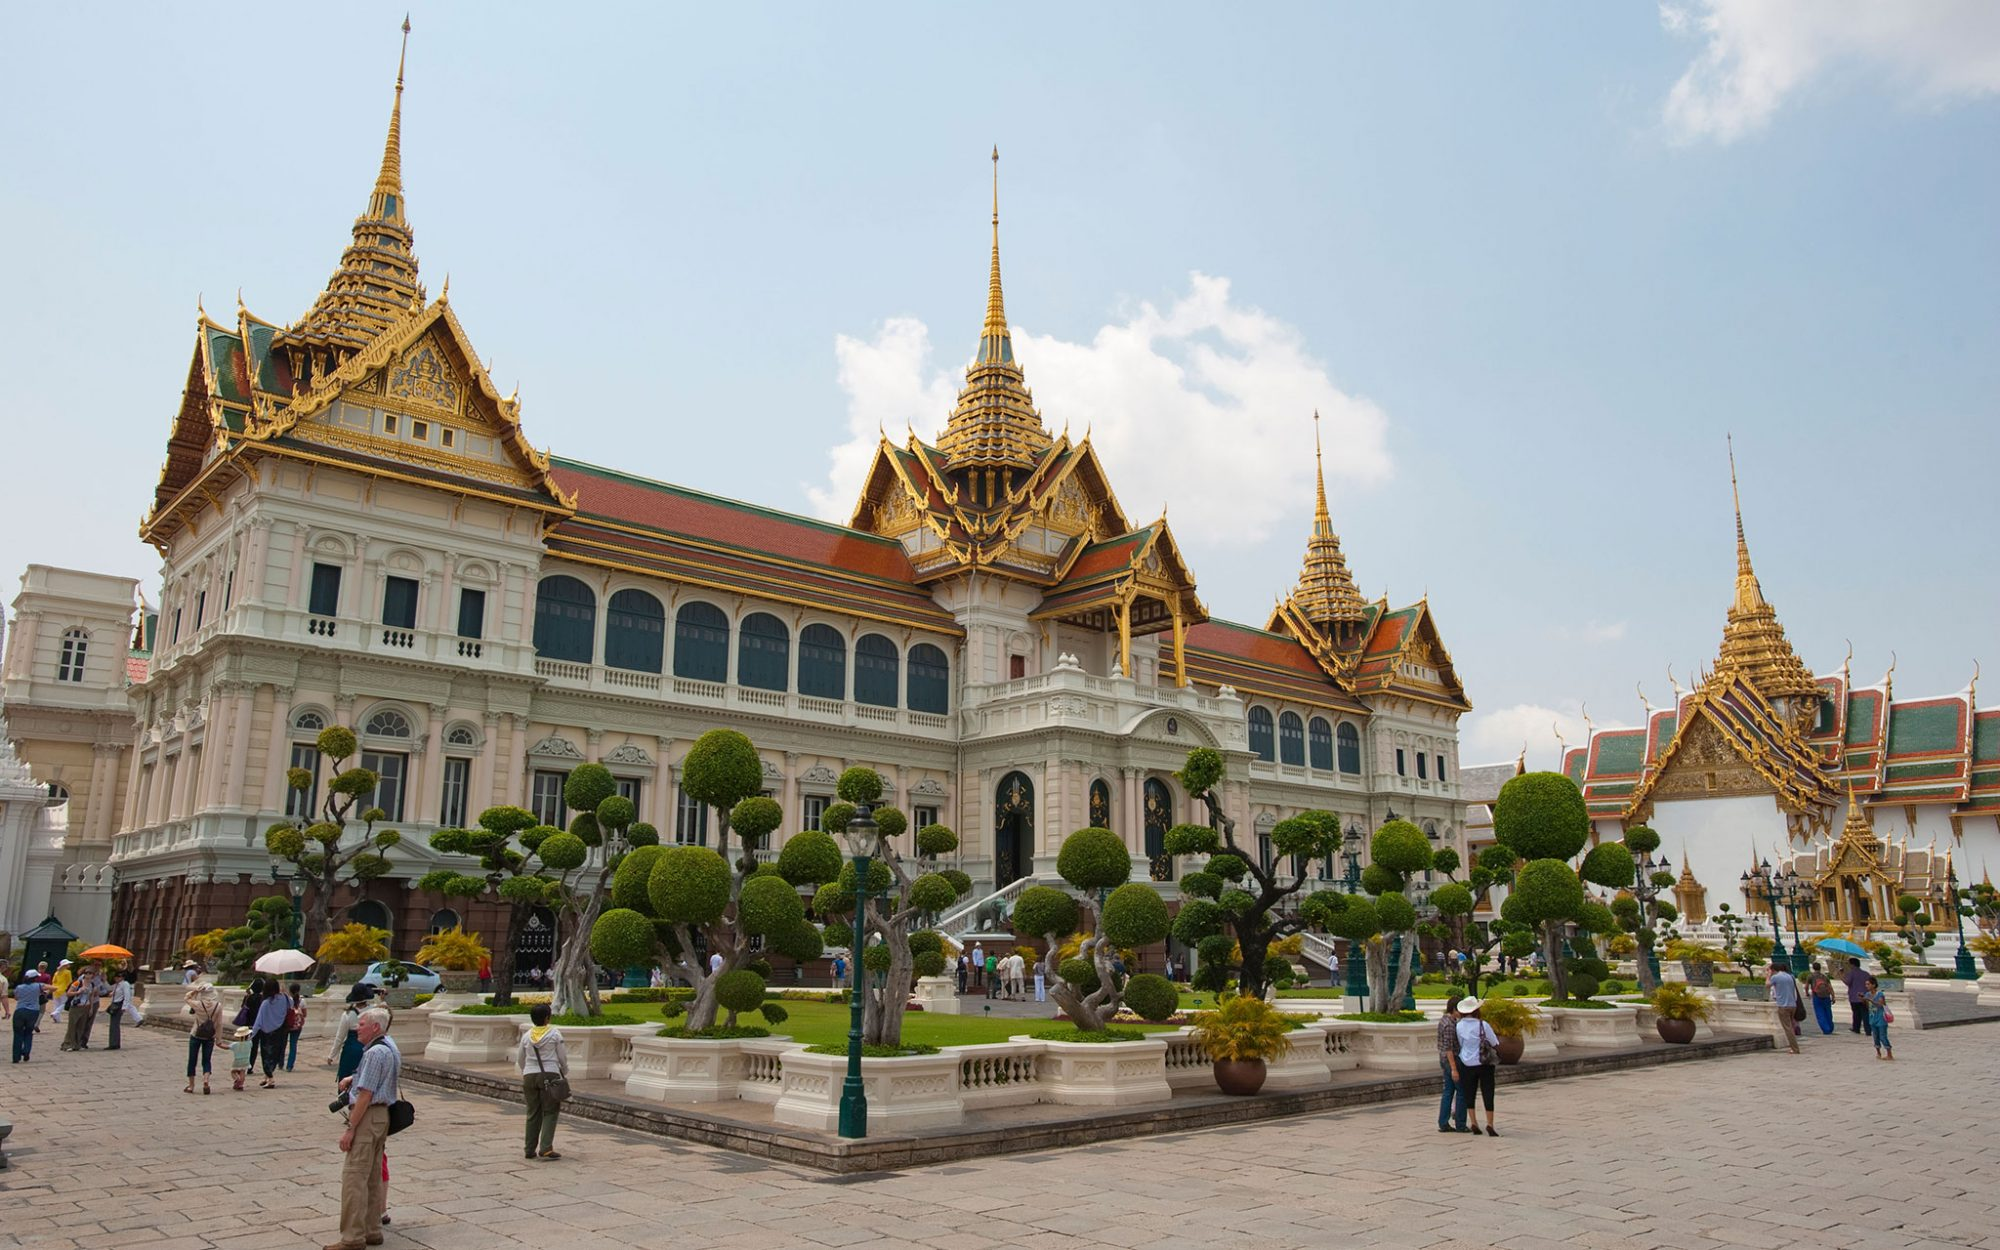 World's Most-Visited Castles: No. 3 Grand Palace, Bangkok